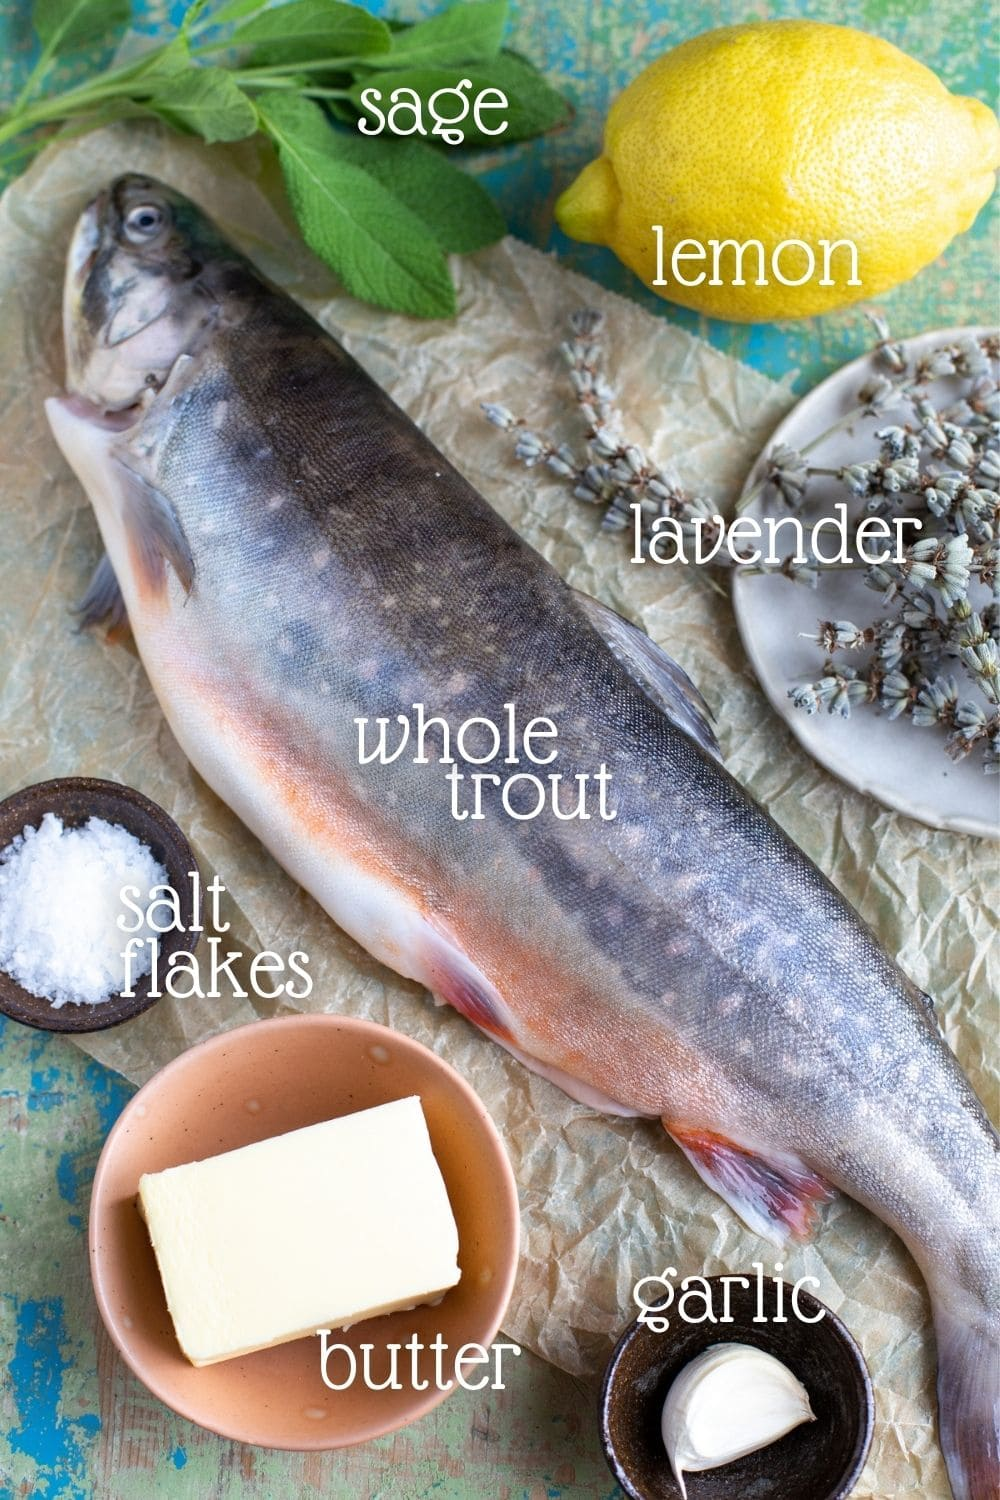 Whole trout surrpounded by the ingredients needed to prepare it.